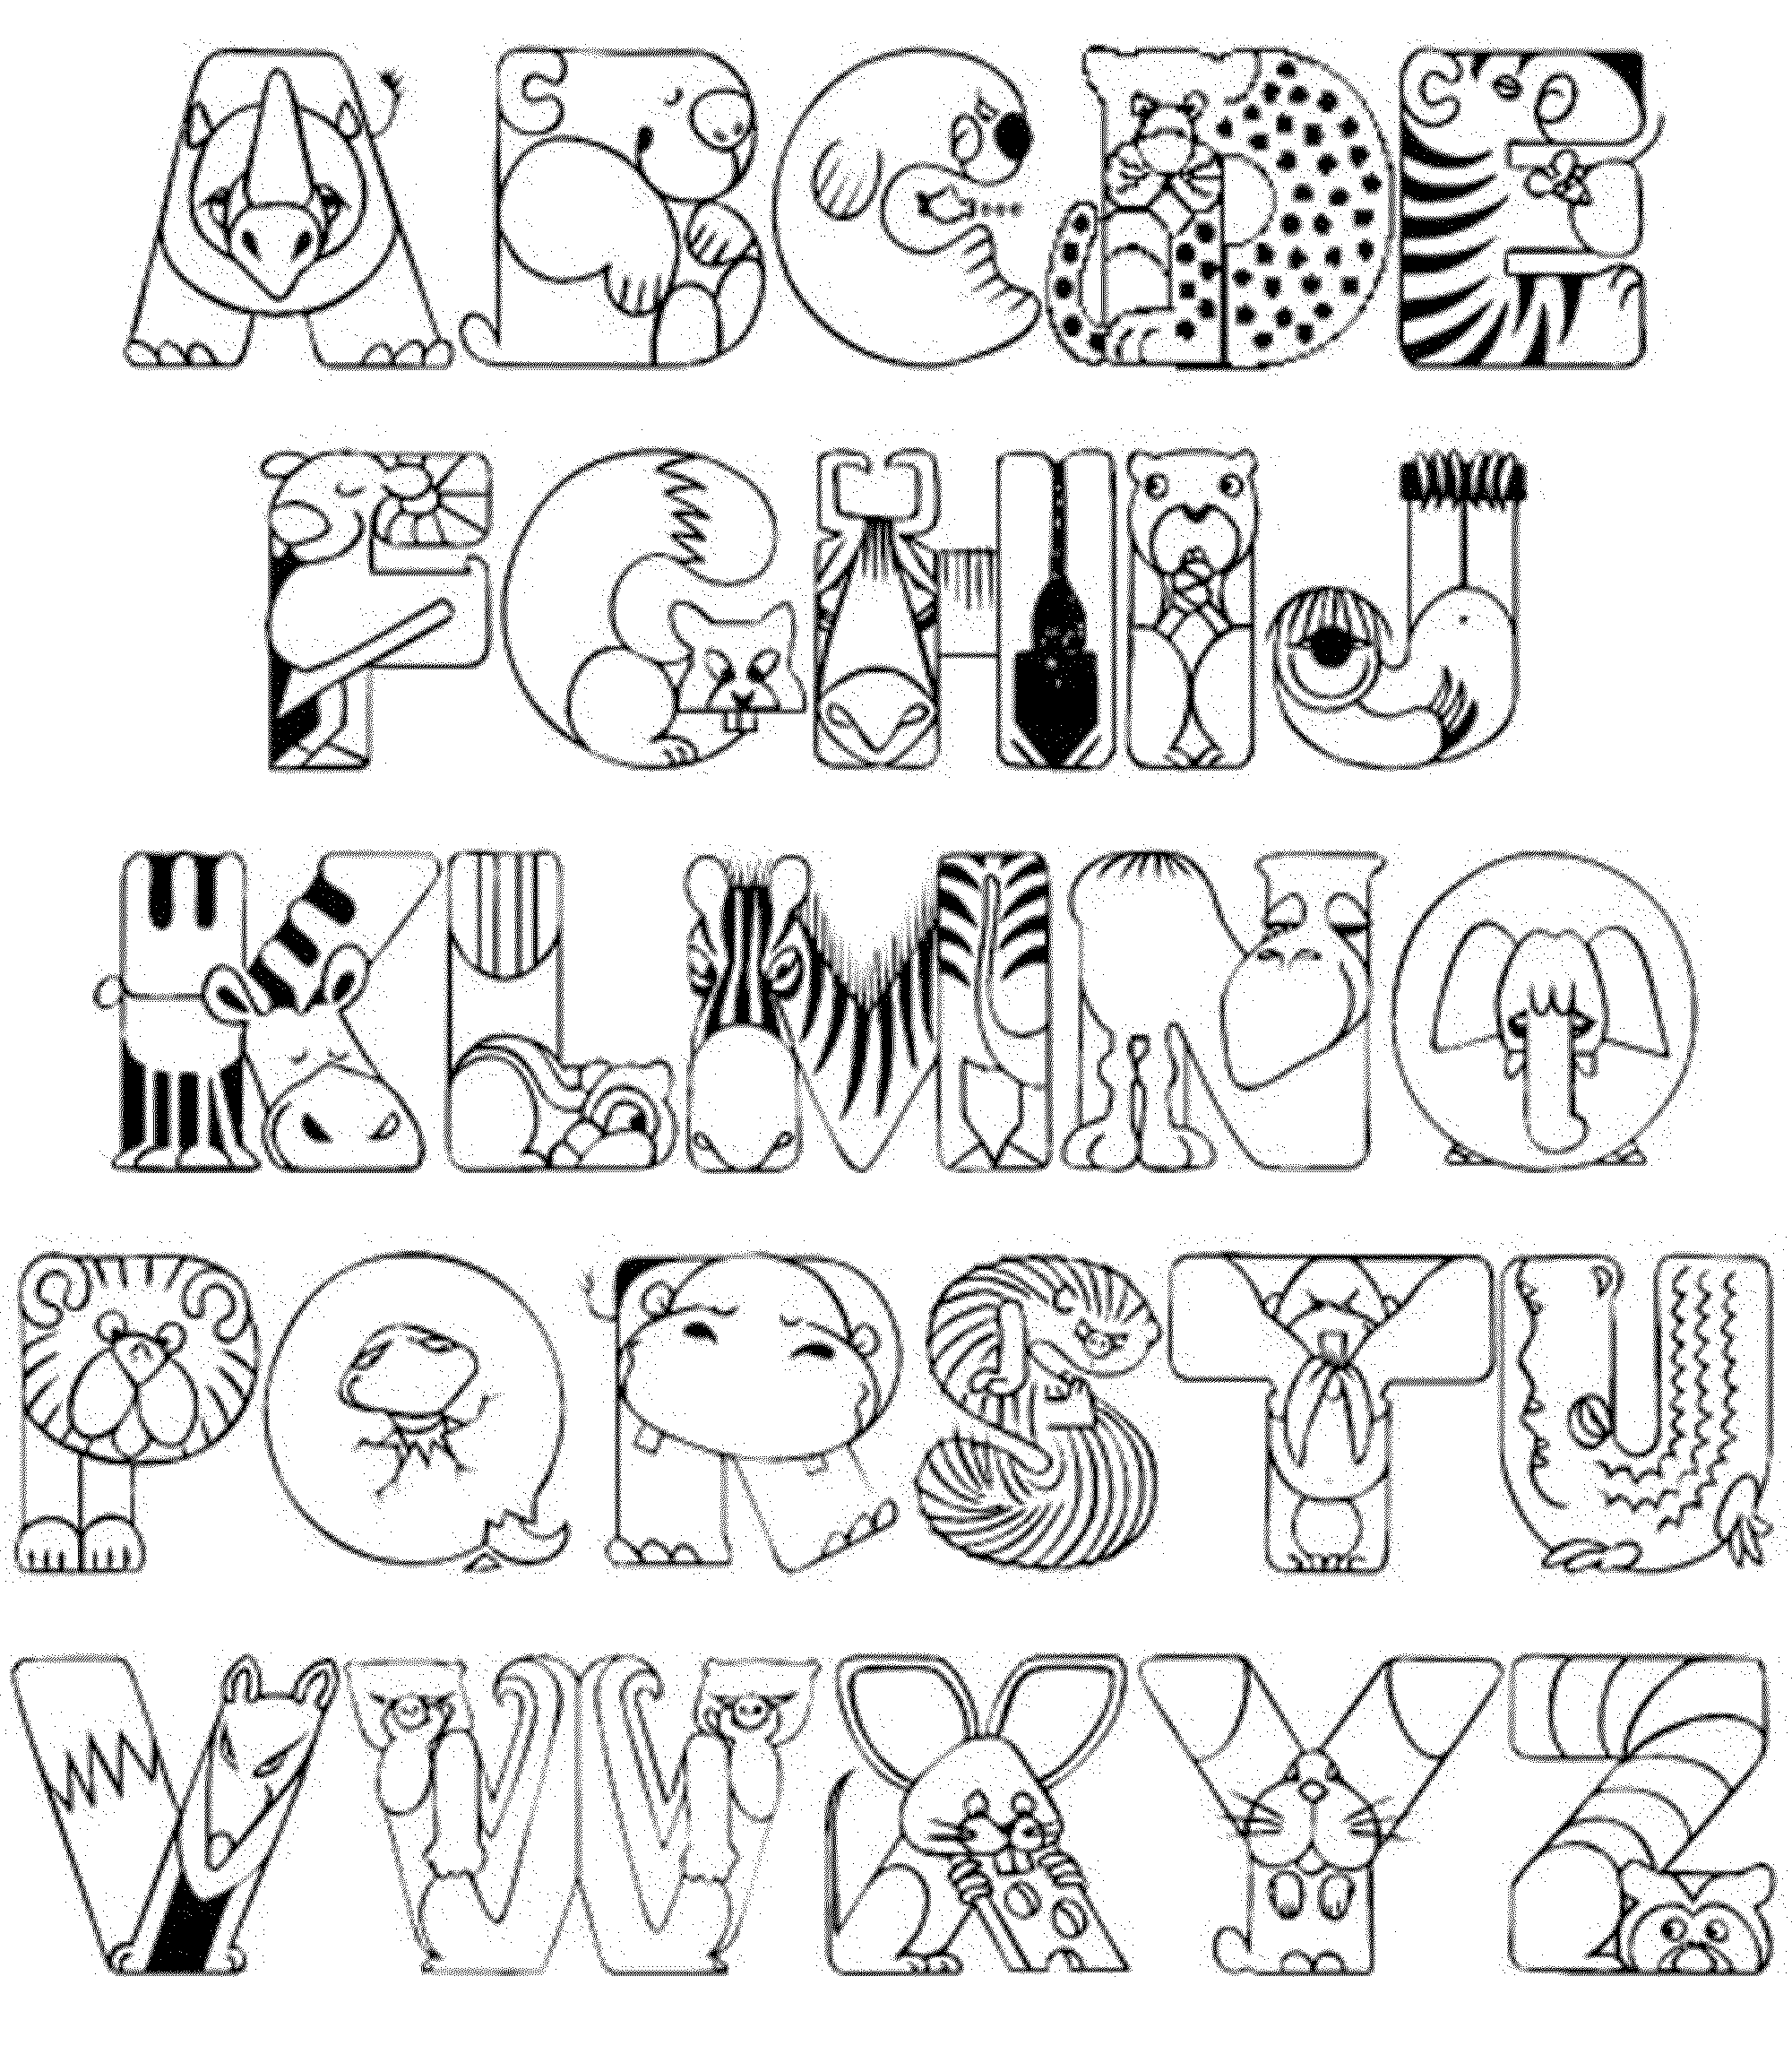 letter a coloring page nav express coloring pages letters alphabet page coloring a letter